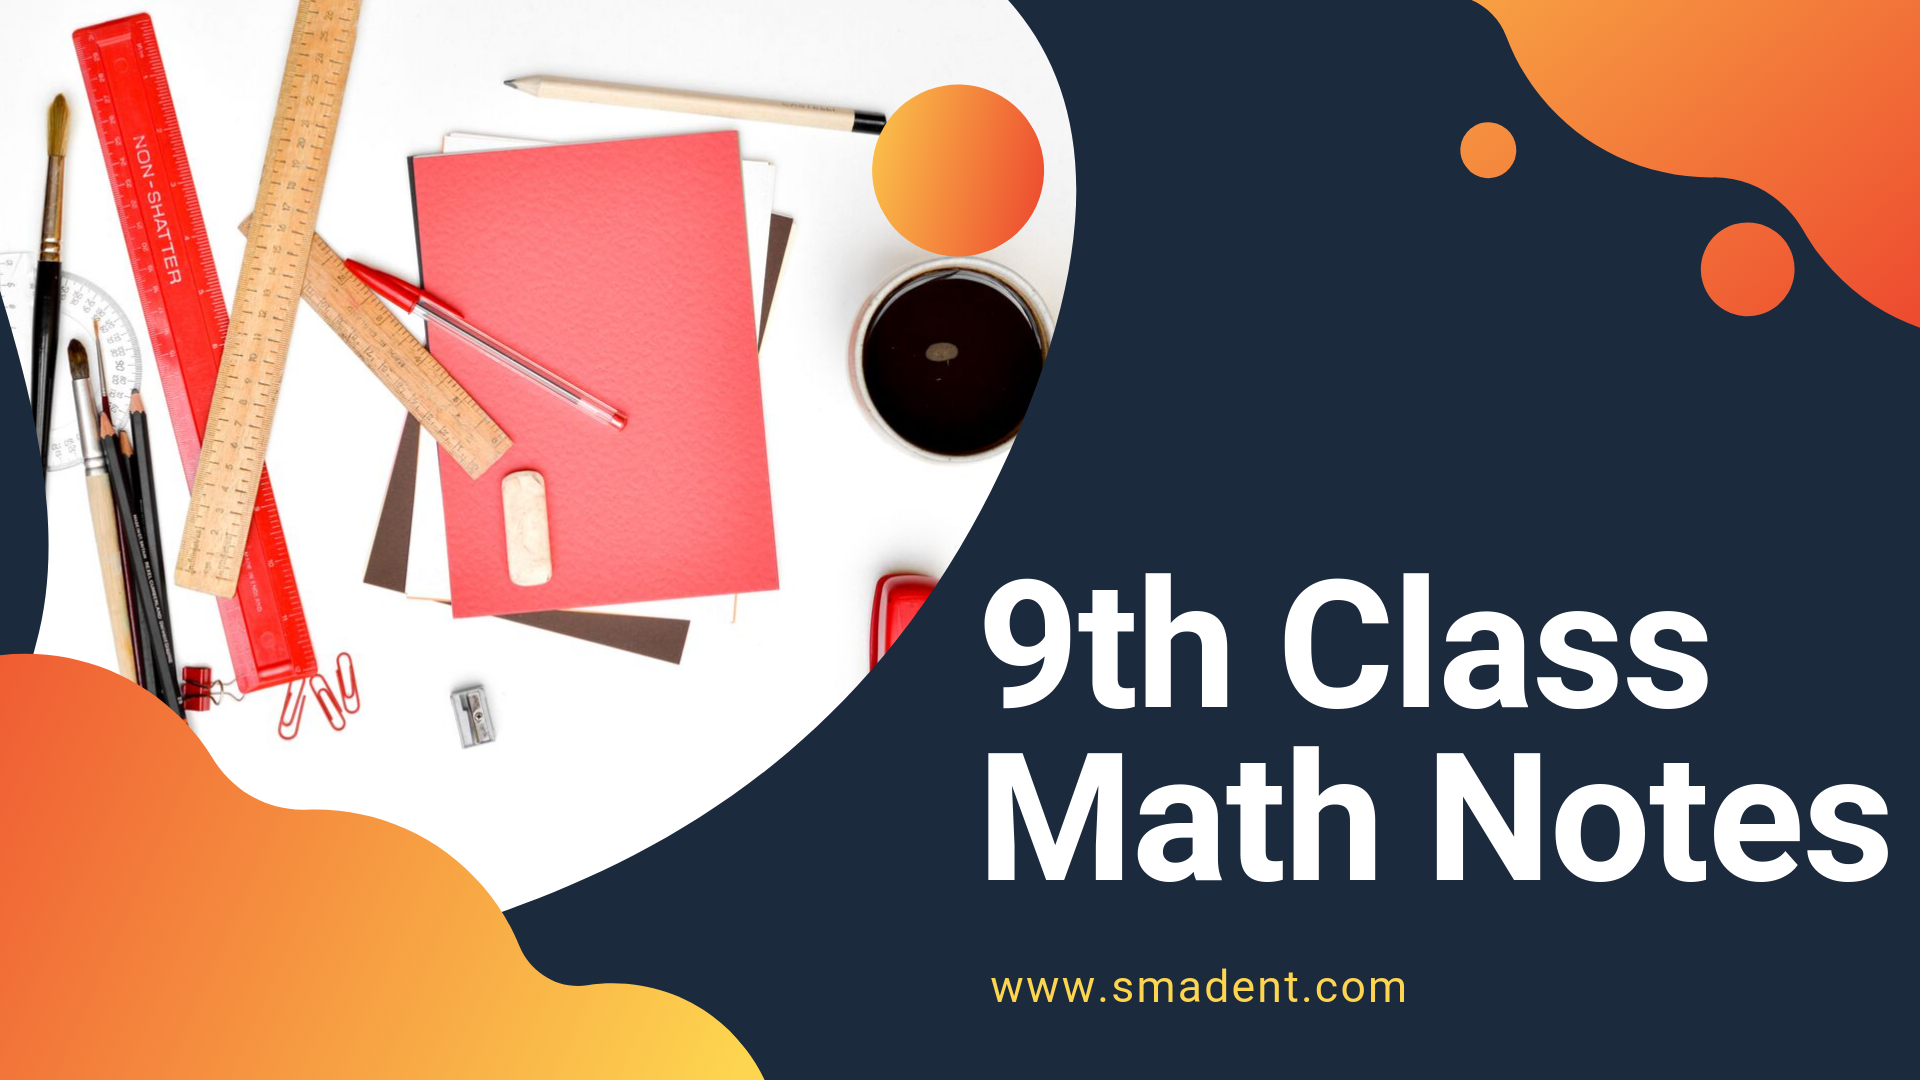 9th Class Math Notes | Smadent